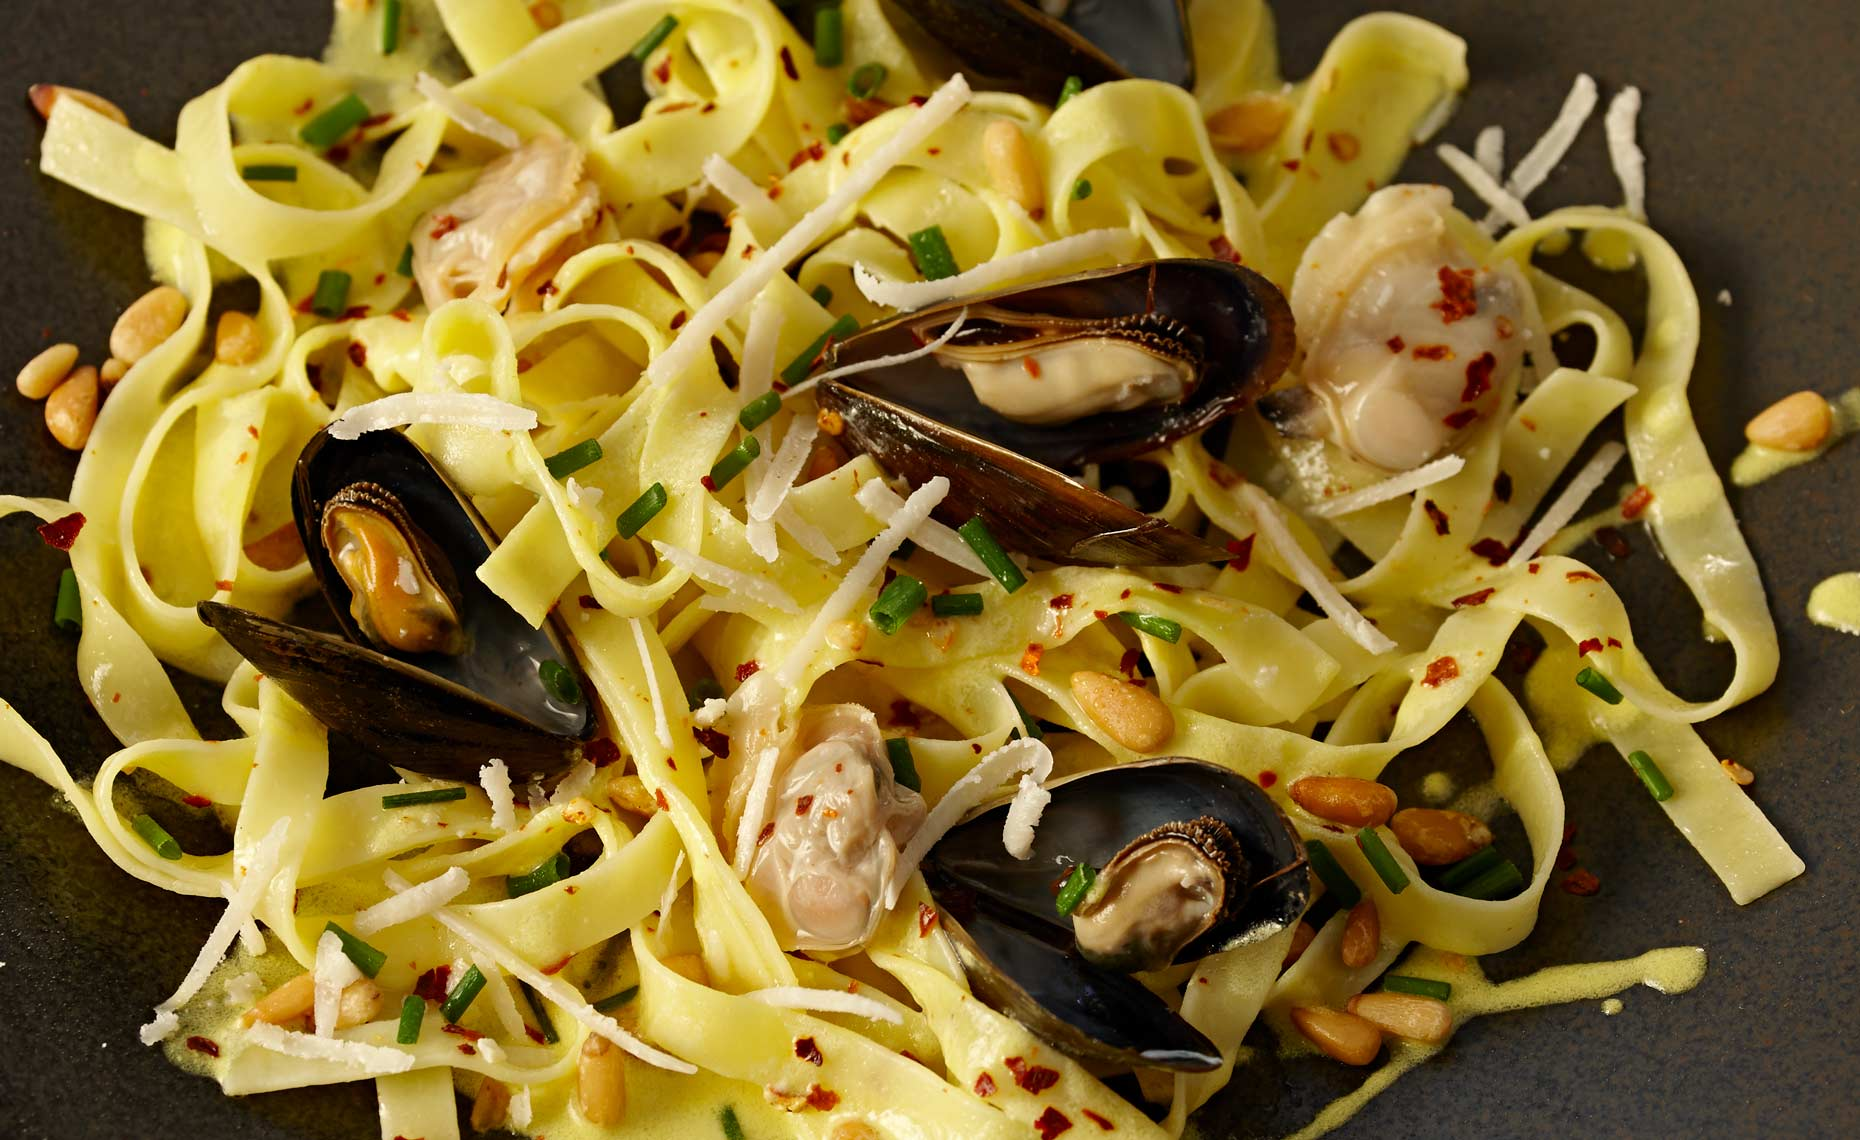 maryland-food-photographers-fettucini-mussels-24